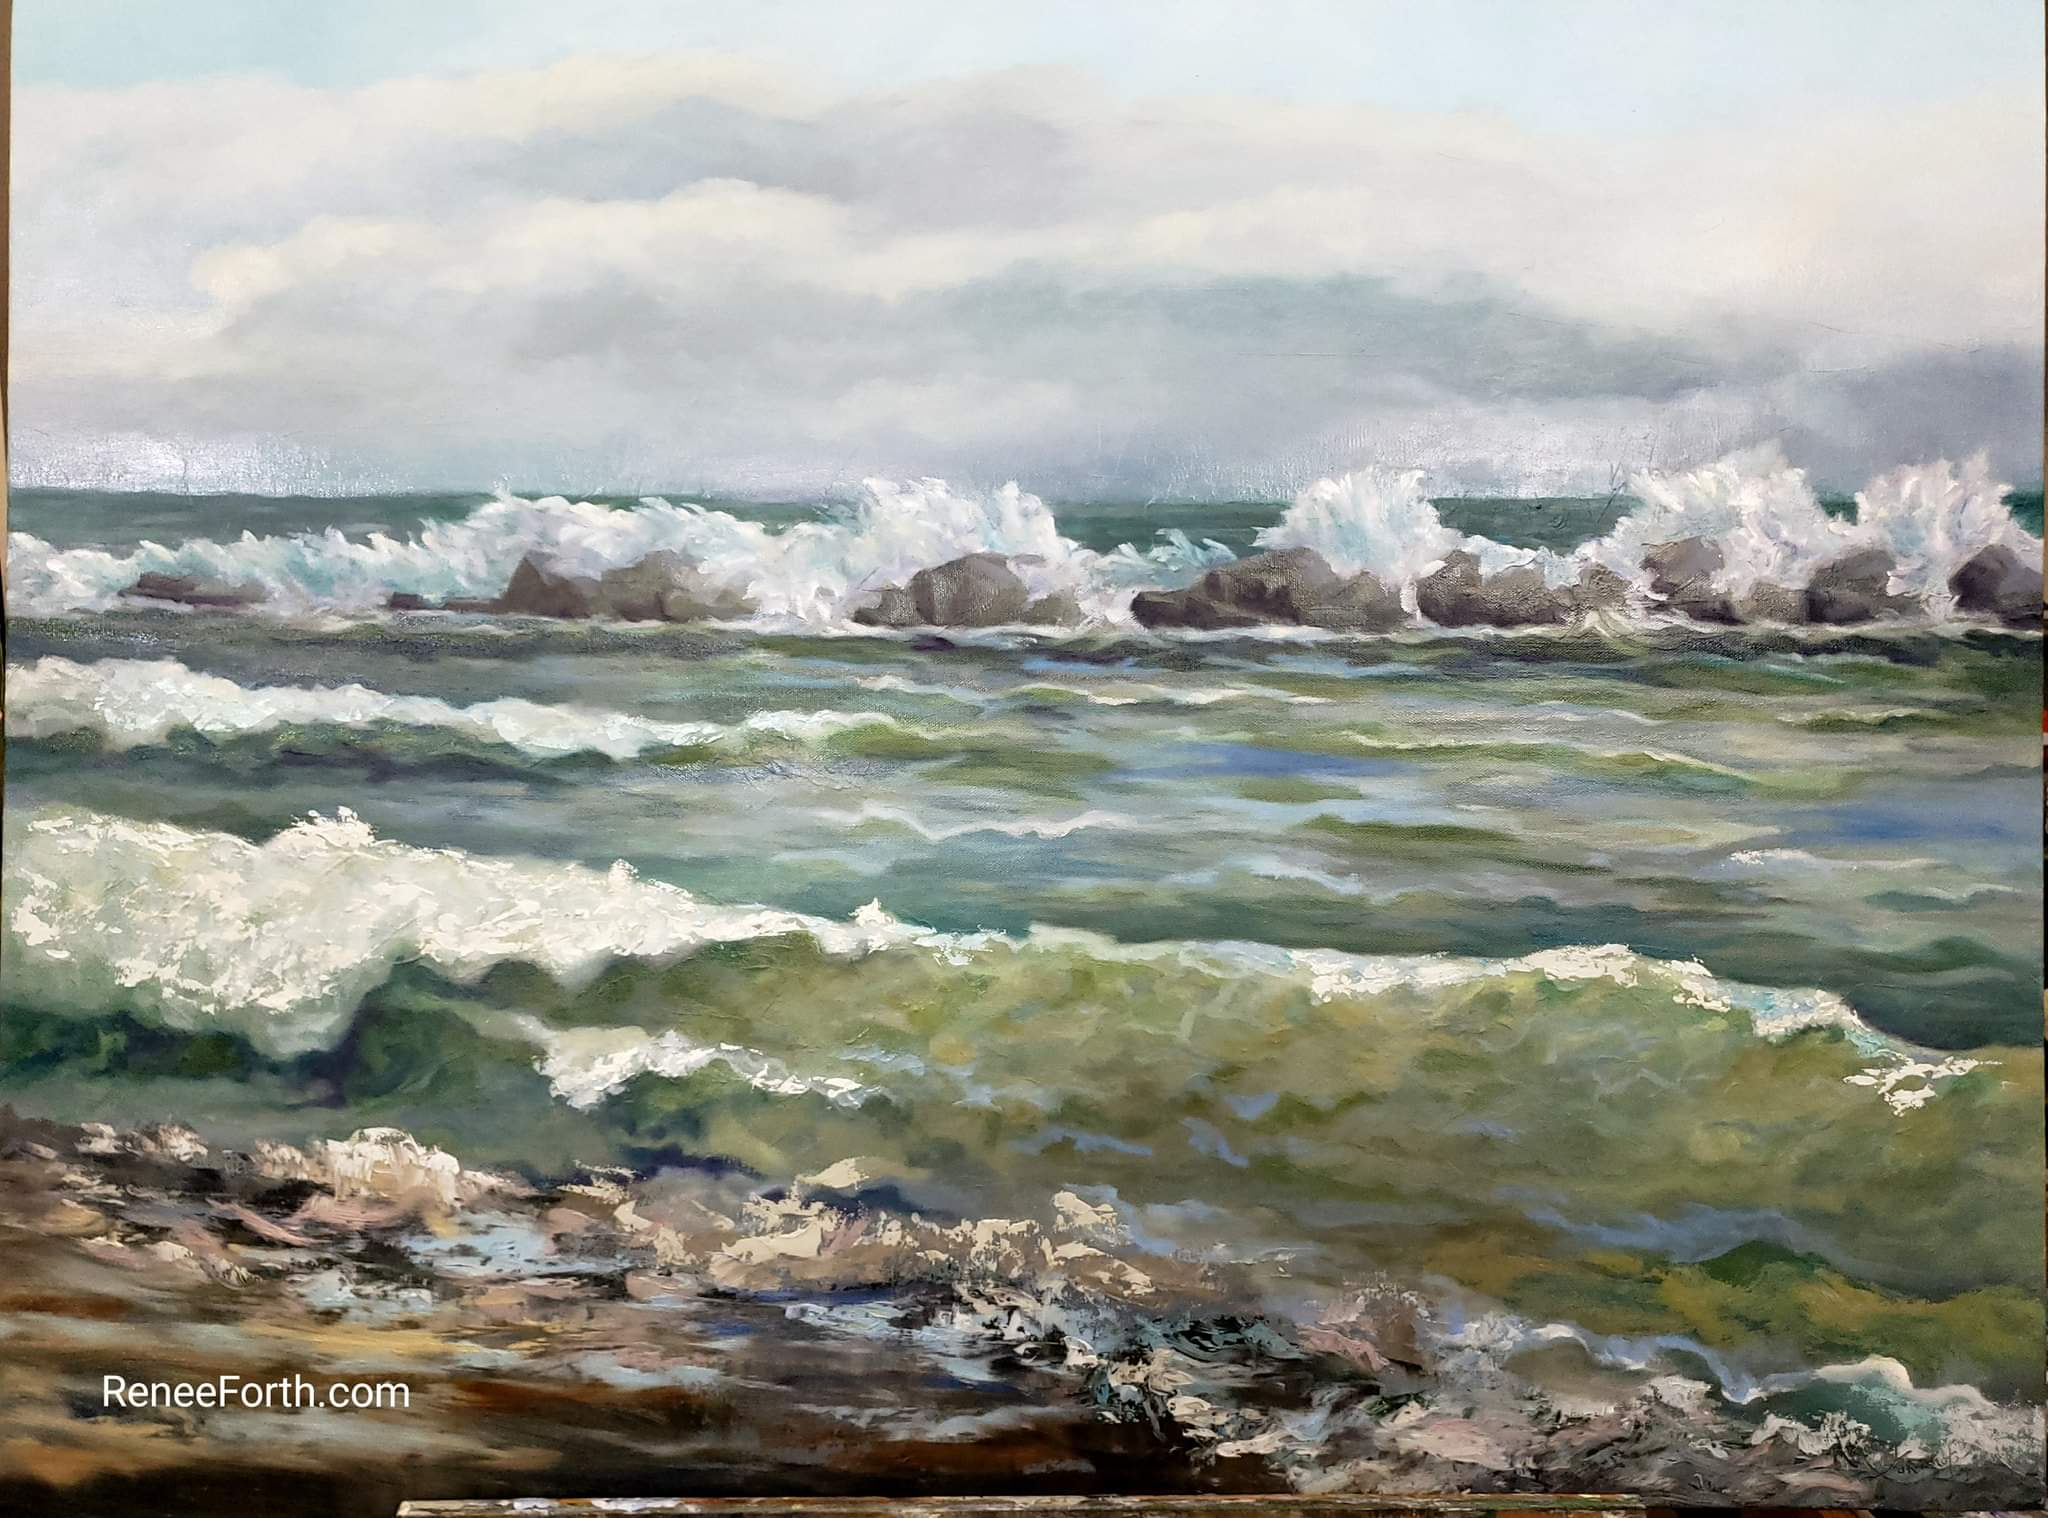 "Refuge, Oils on Canvas, 30"" x 40"" x 1.5"". Waves roll into the shore after spending their wild energy on the Rocky breakwater."